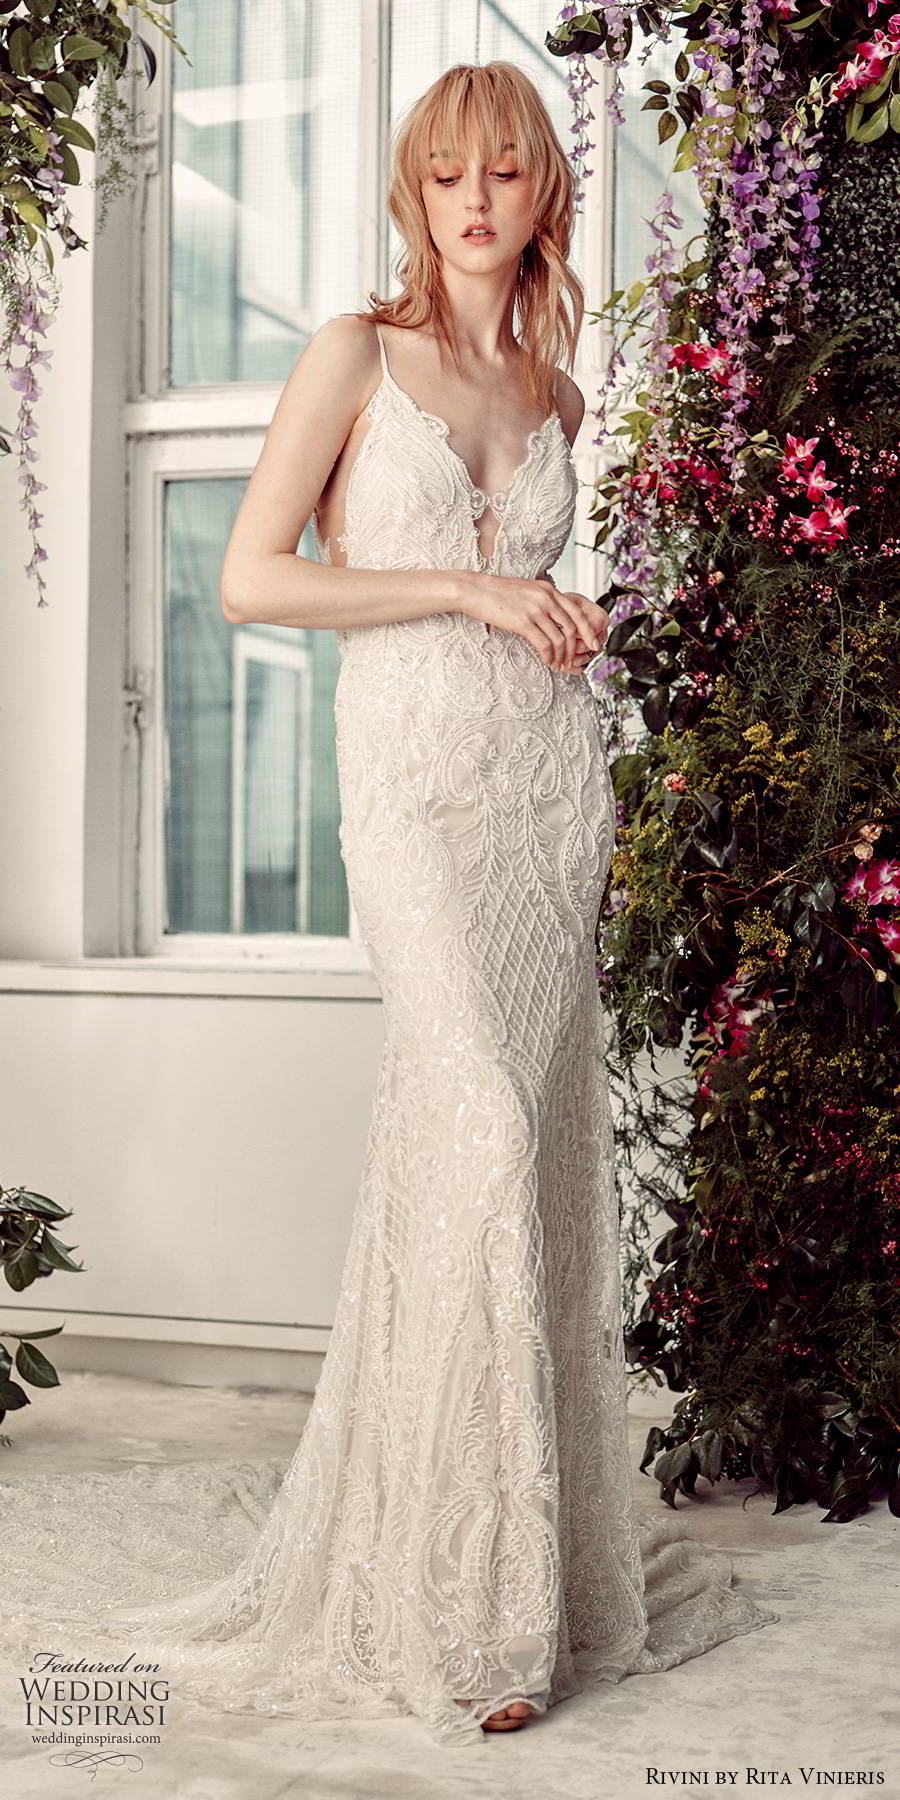 rivini by rita vinieris spring 2020 bridal sleevelses thin straps plunging v neckline fully embellished glam sheath wedding dress open back chapel train (6) mv